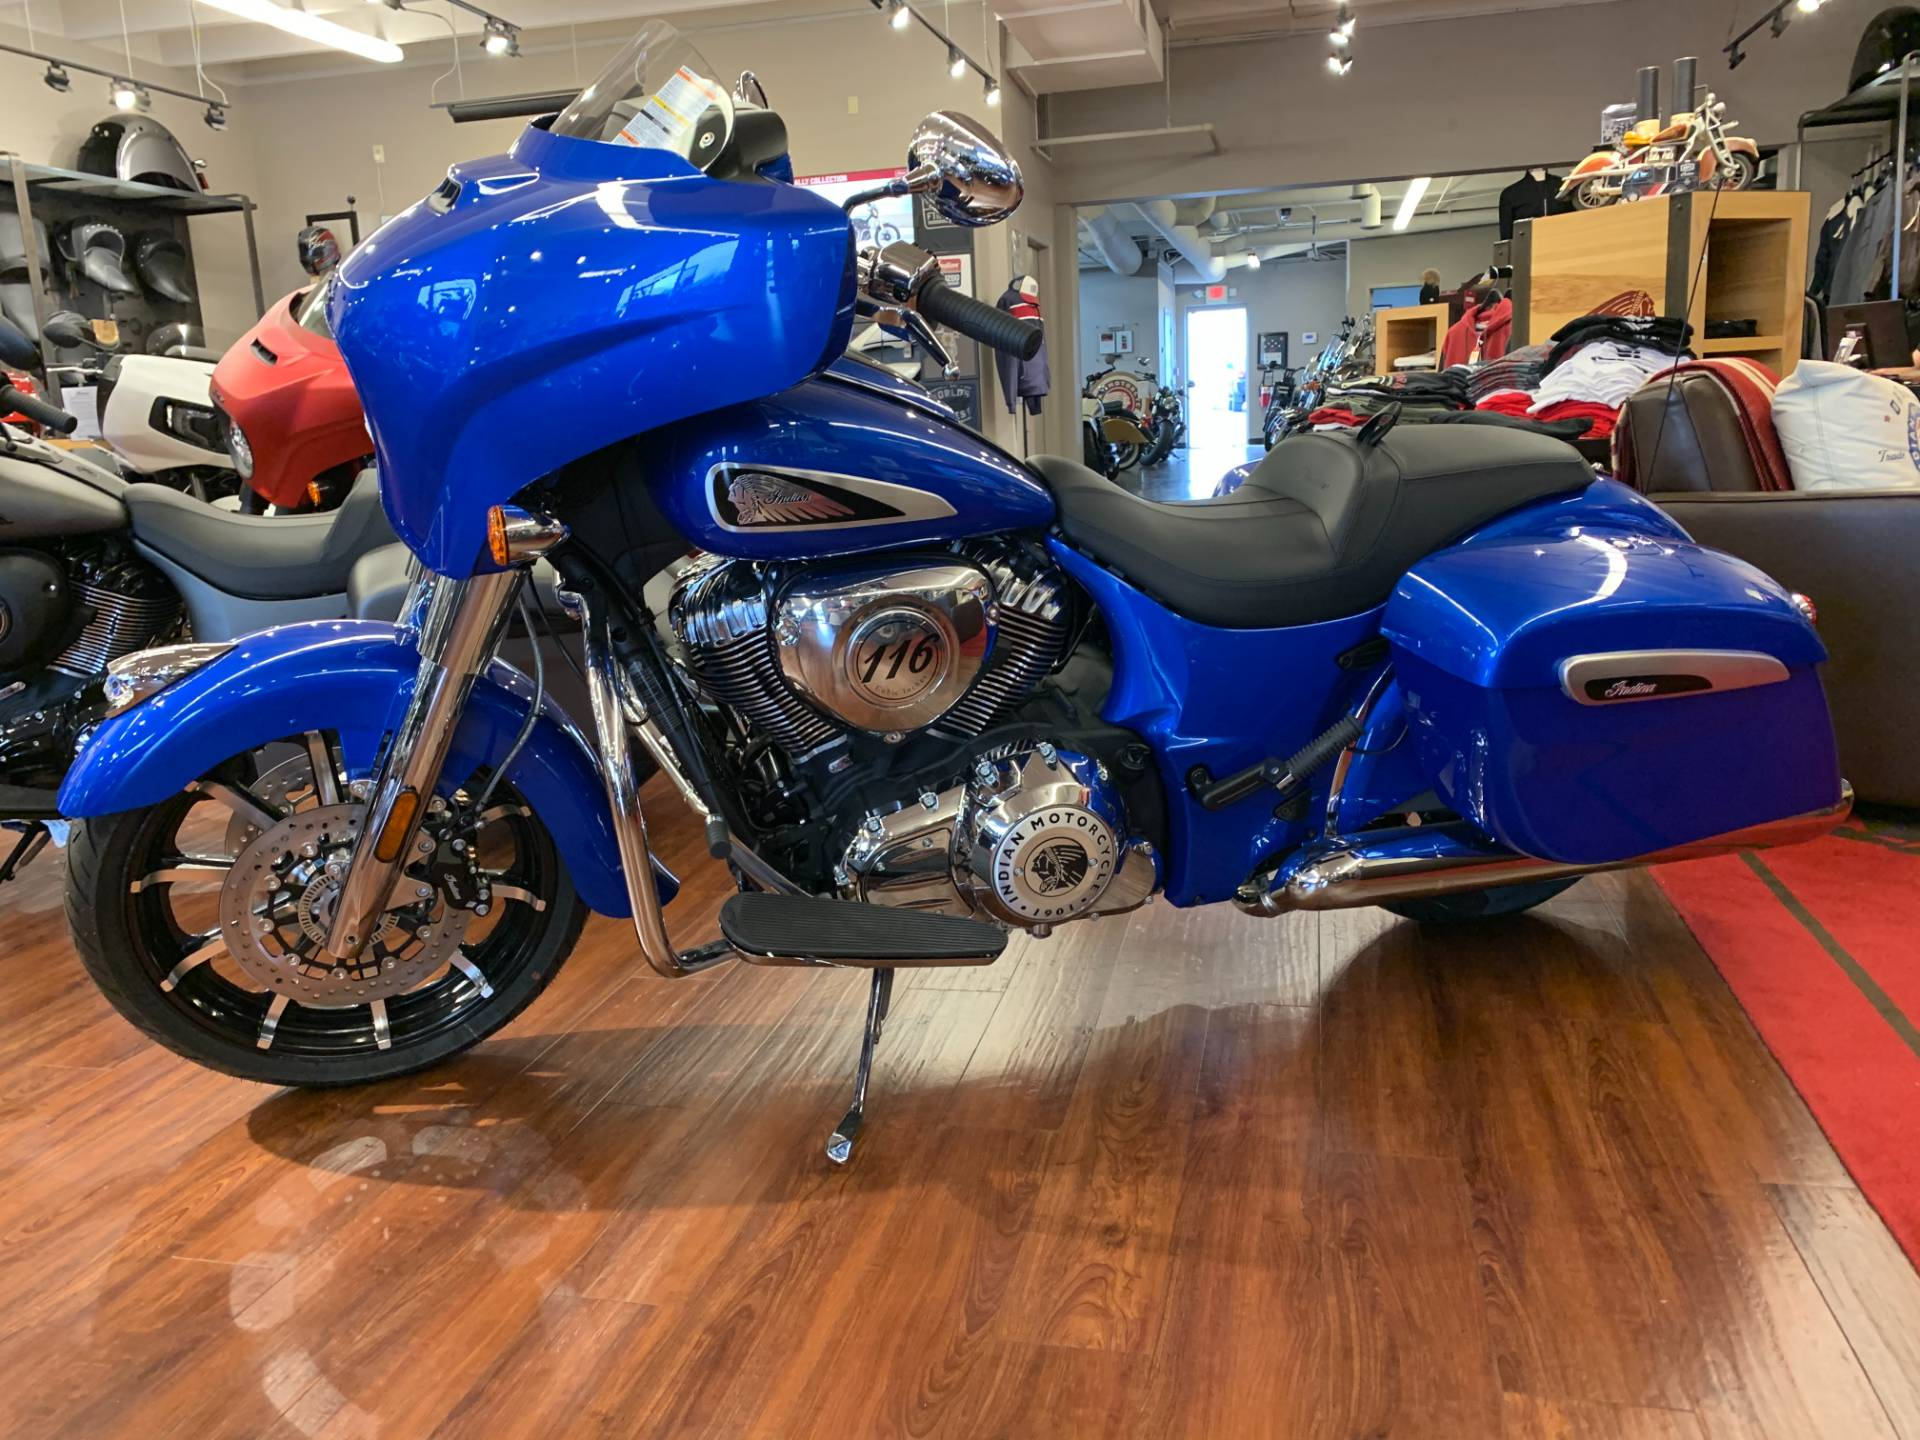 2021 Indian Chieftain® Limited in Nashville, Tennessee - Photo 1